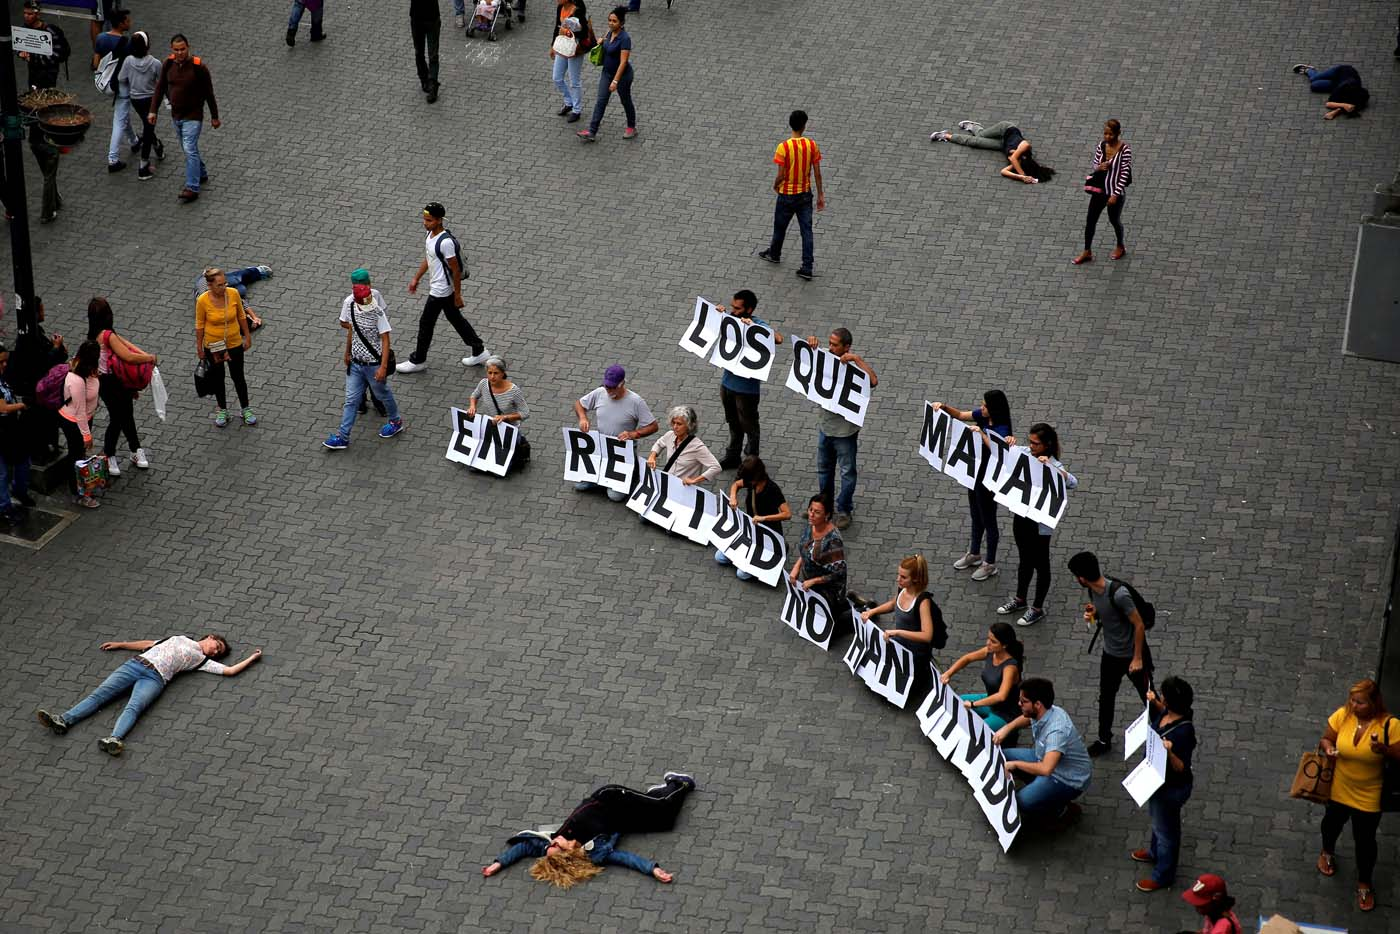 """Opposition supporters hold letters to build a banner that reads """"Those who kill in fact they have not lived"""" during a rally against Venezuelan President Nicolas Maduro's government in Caracas, Venezuela June 8, 2017. Picture taken June 8, 2017. REUTERS/Ivan Alvarado"""